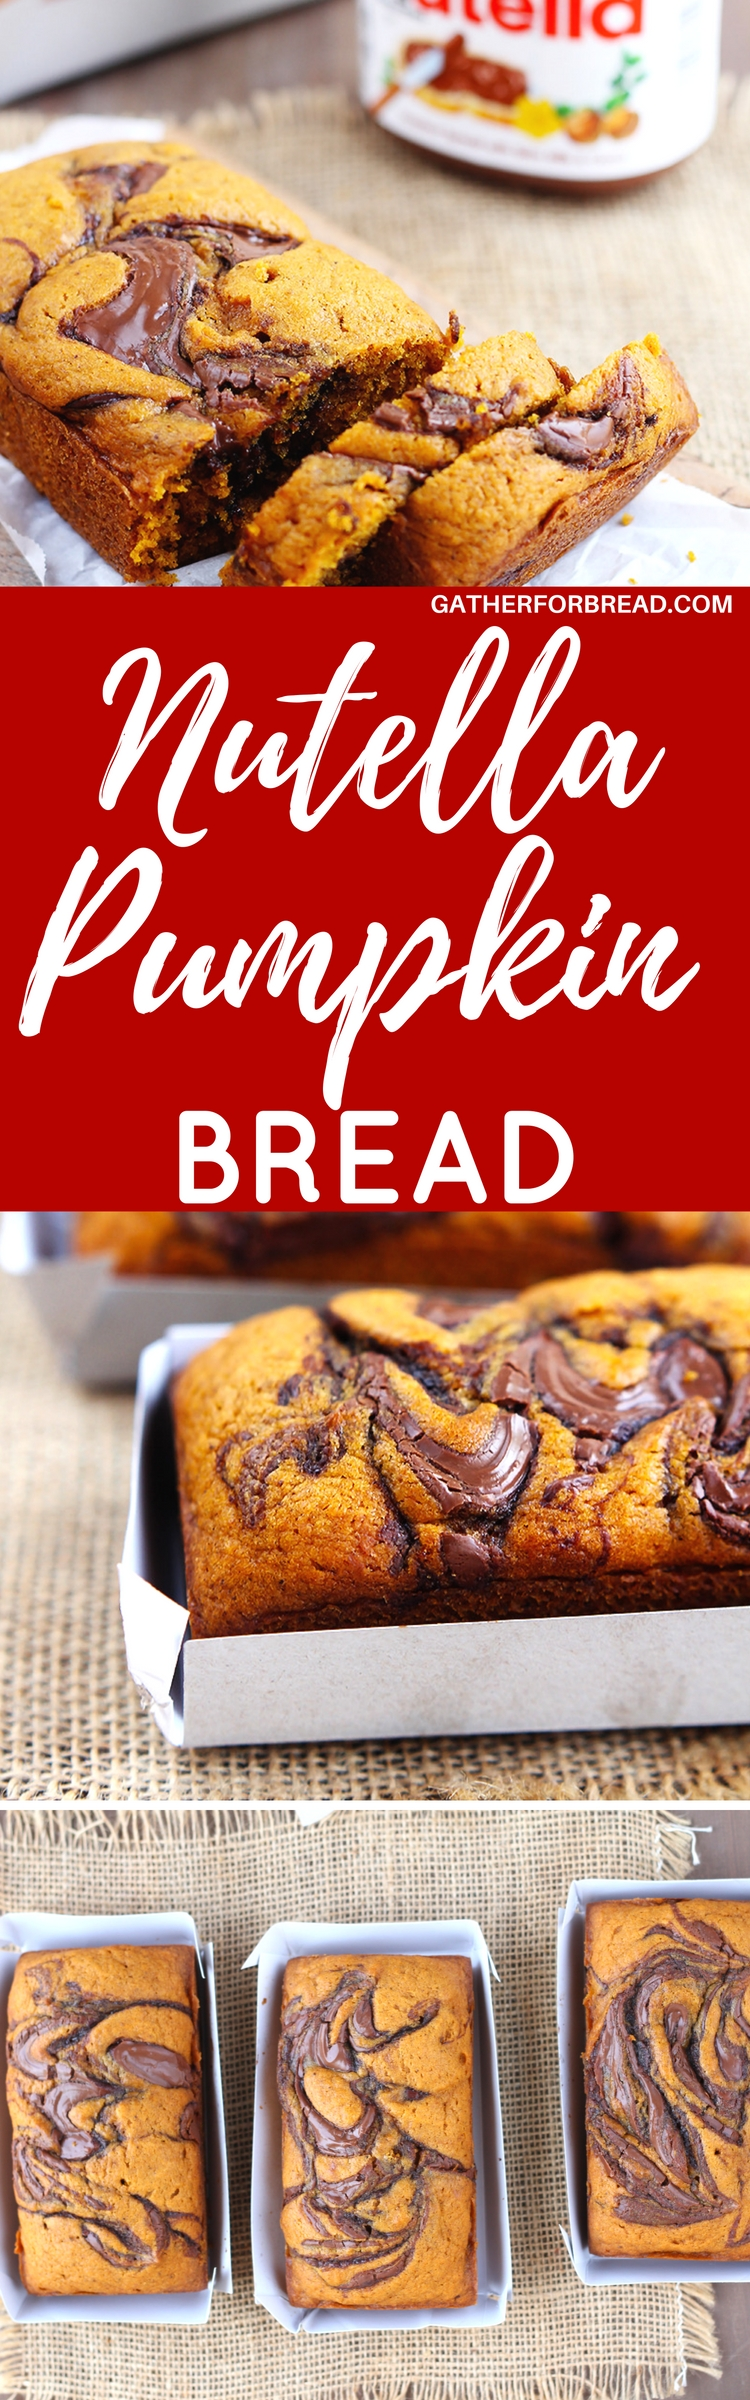 Nutella Swirled Pumpkin Bread - Fall pumpkin loaves swirled with a good dose of Nutella. A fall favorite!!!